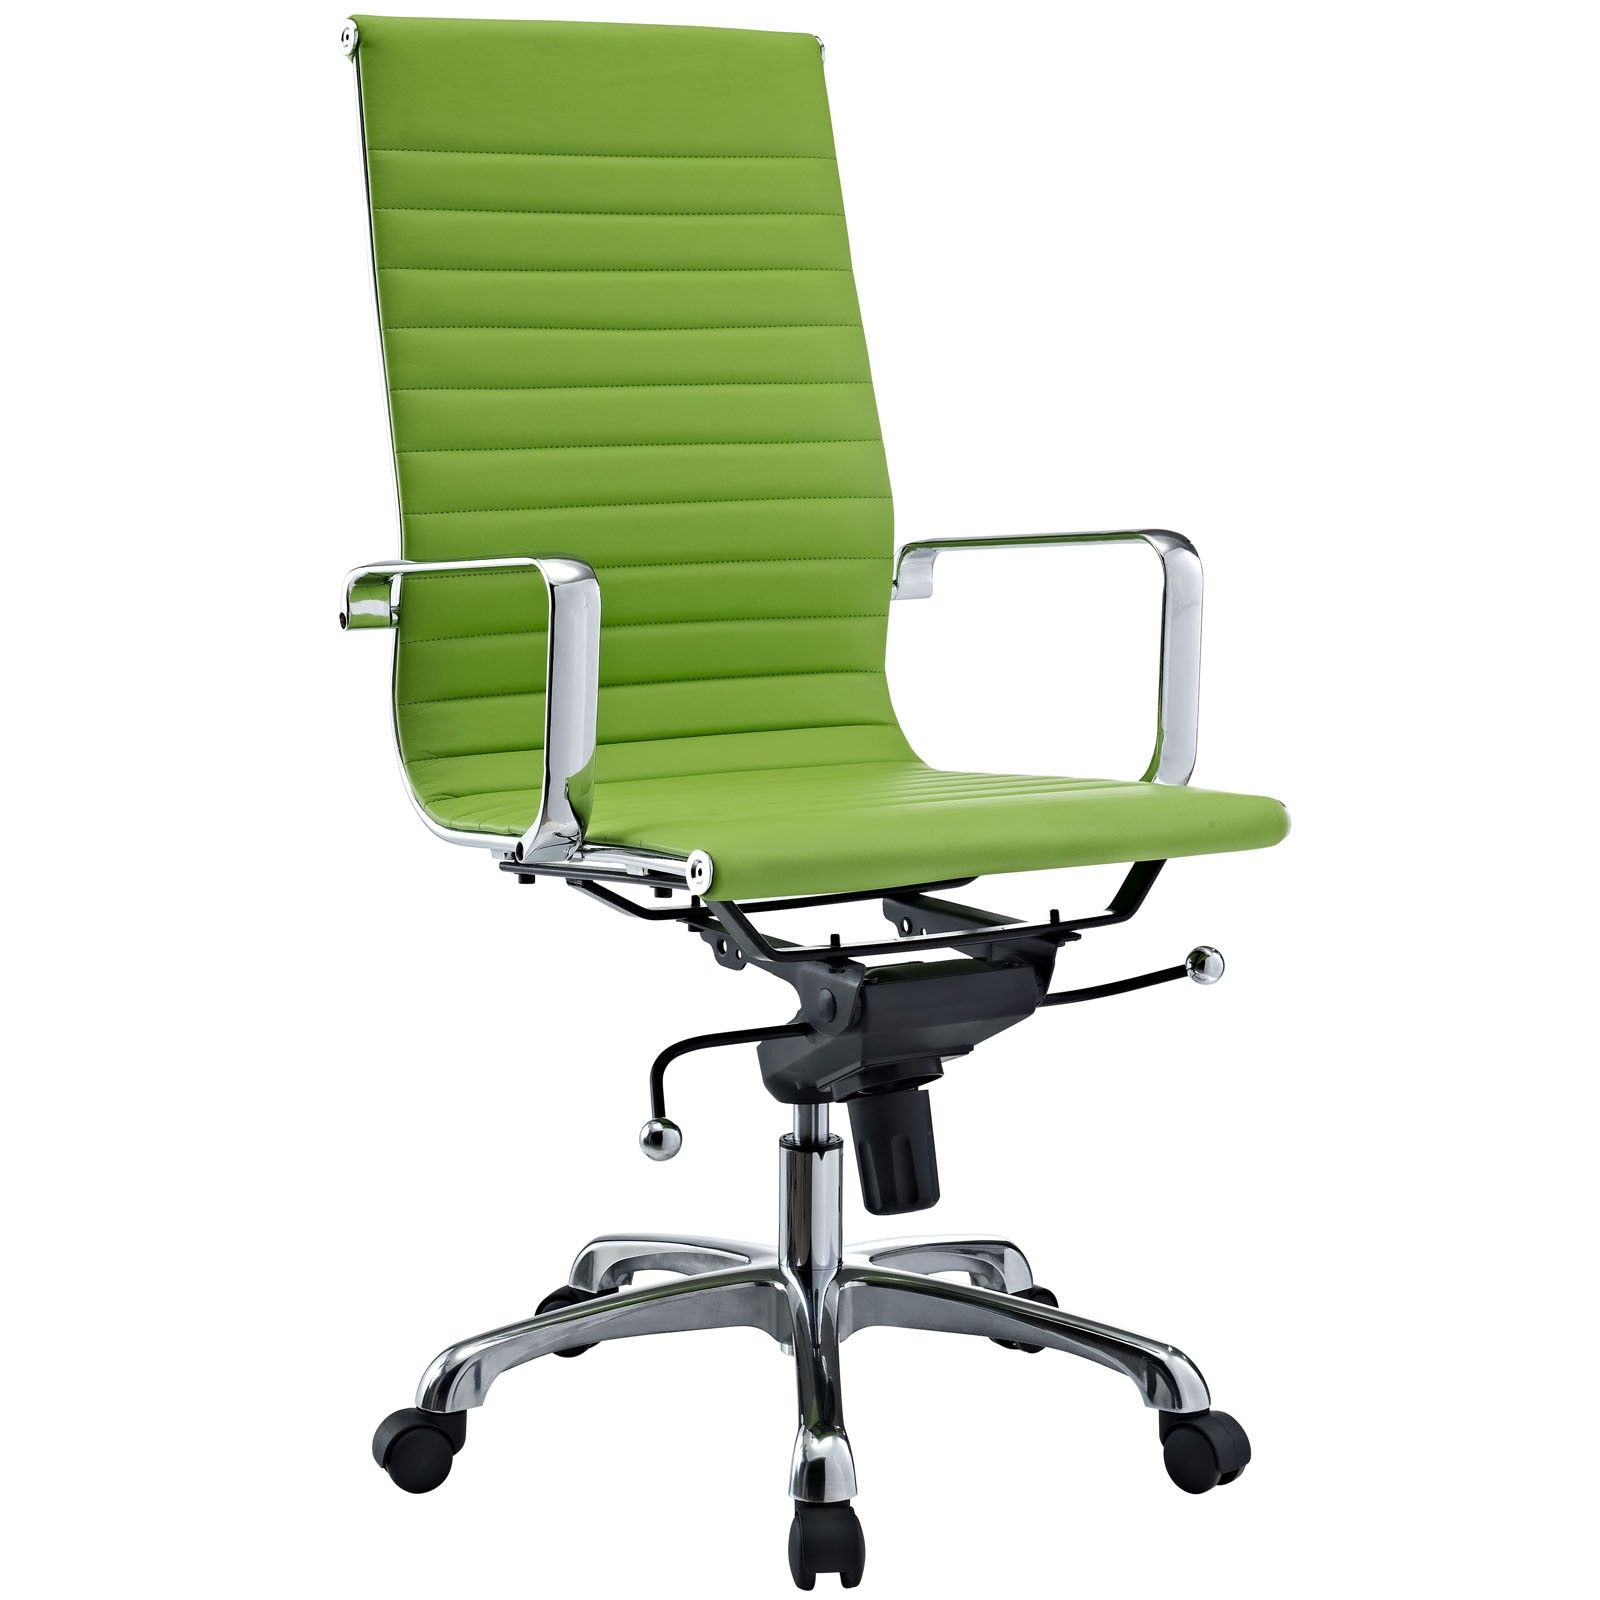 Green Desk Chairs George Nelson Executive Desk